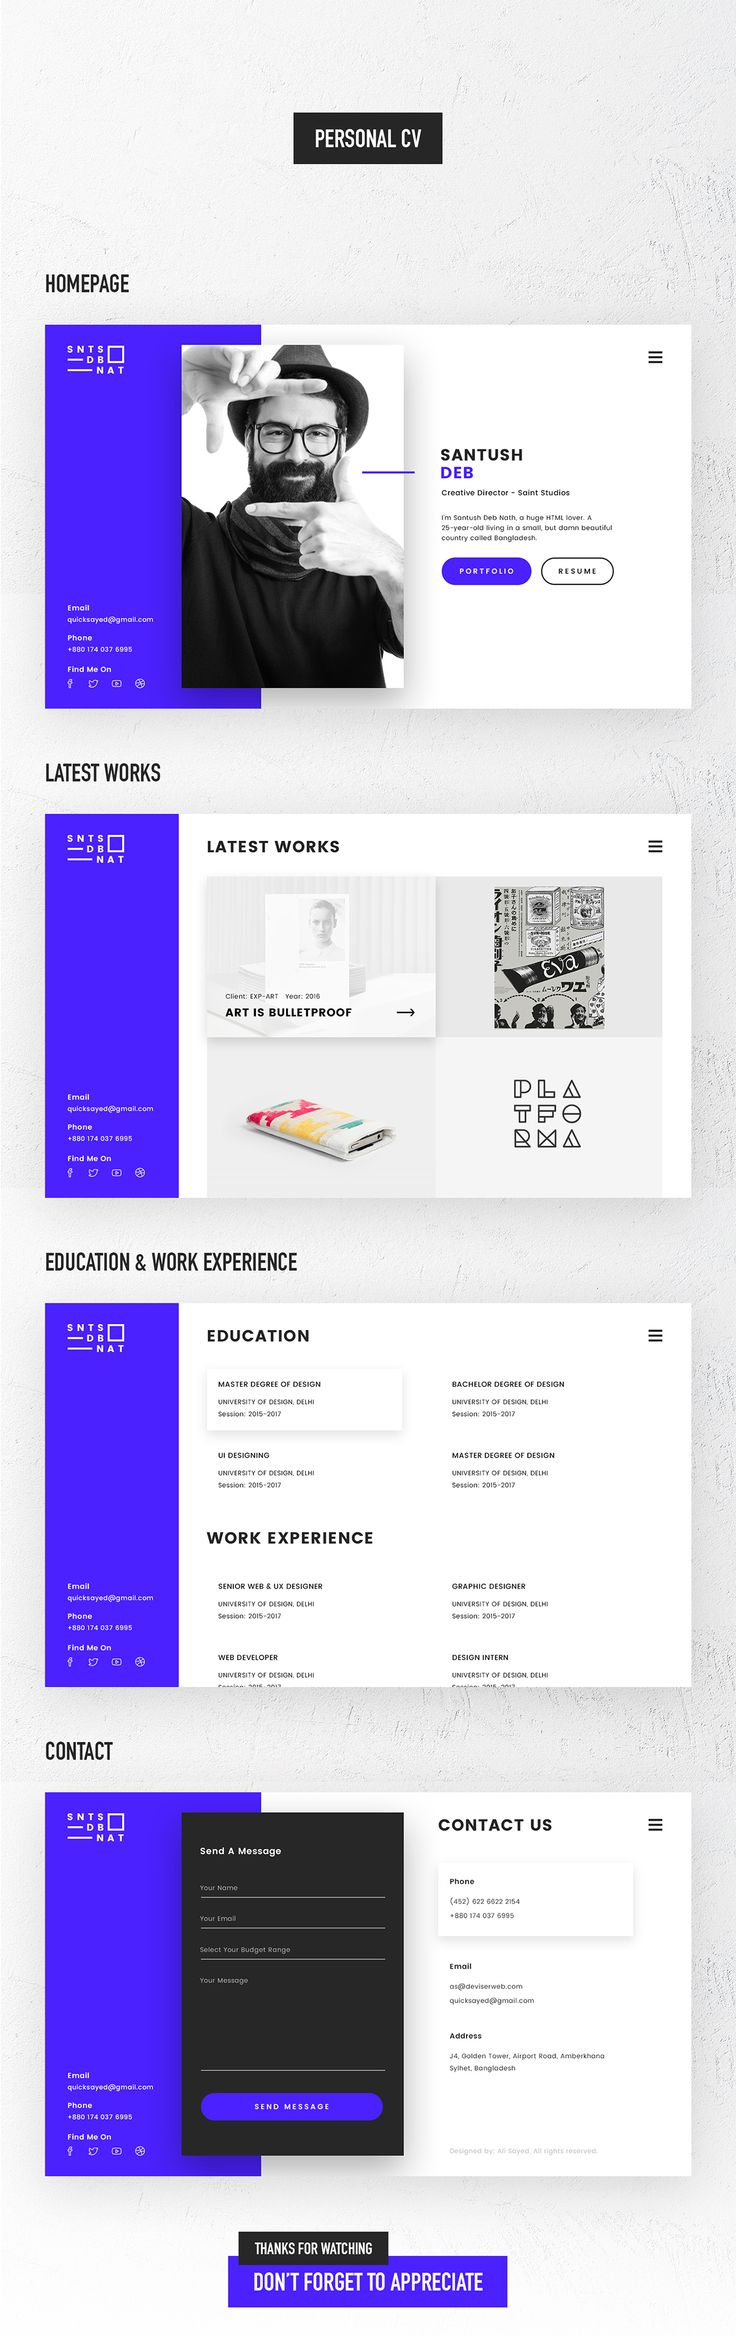 Personal CV or VCard on Behance